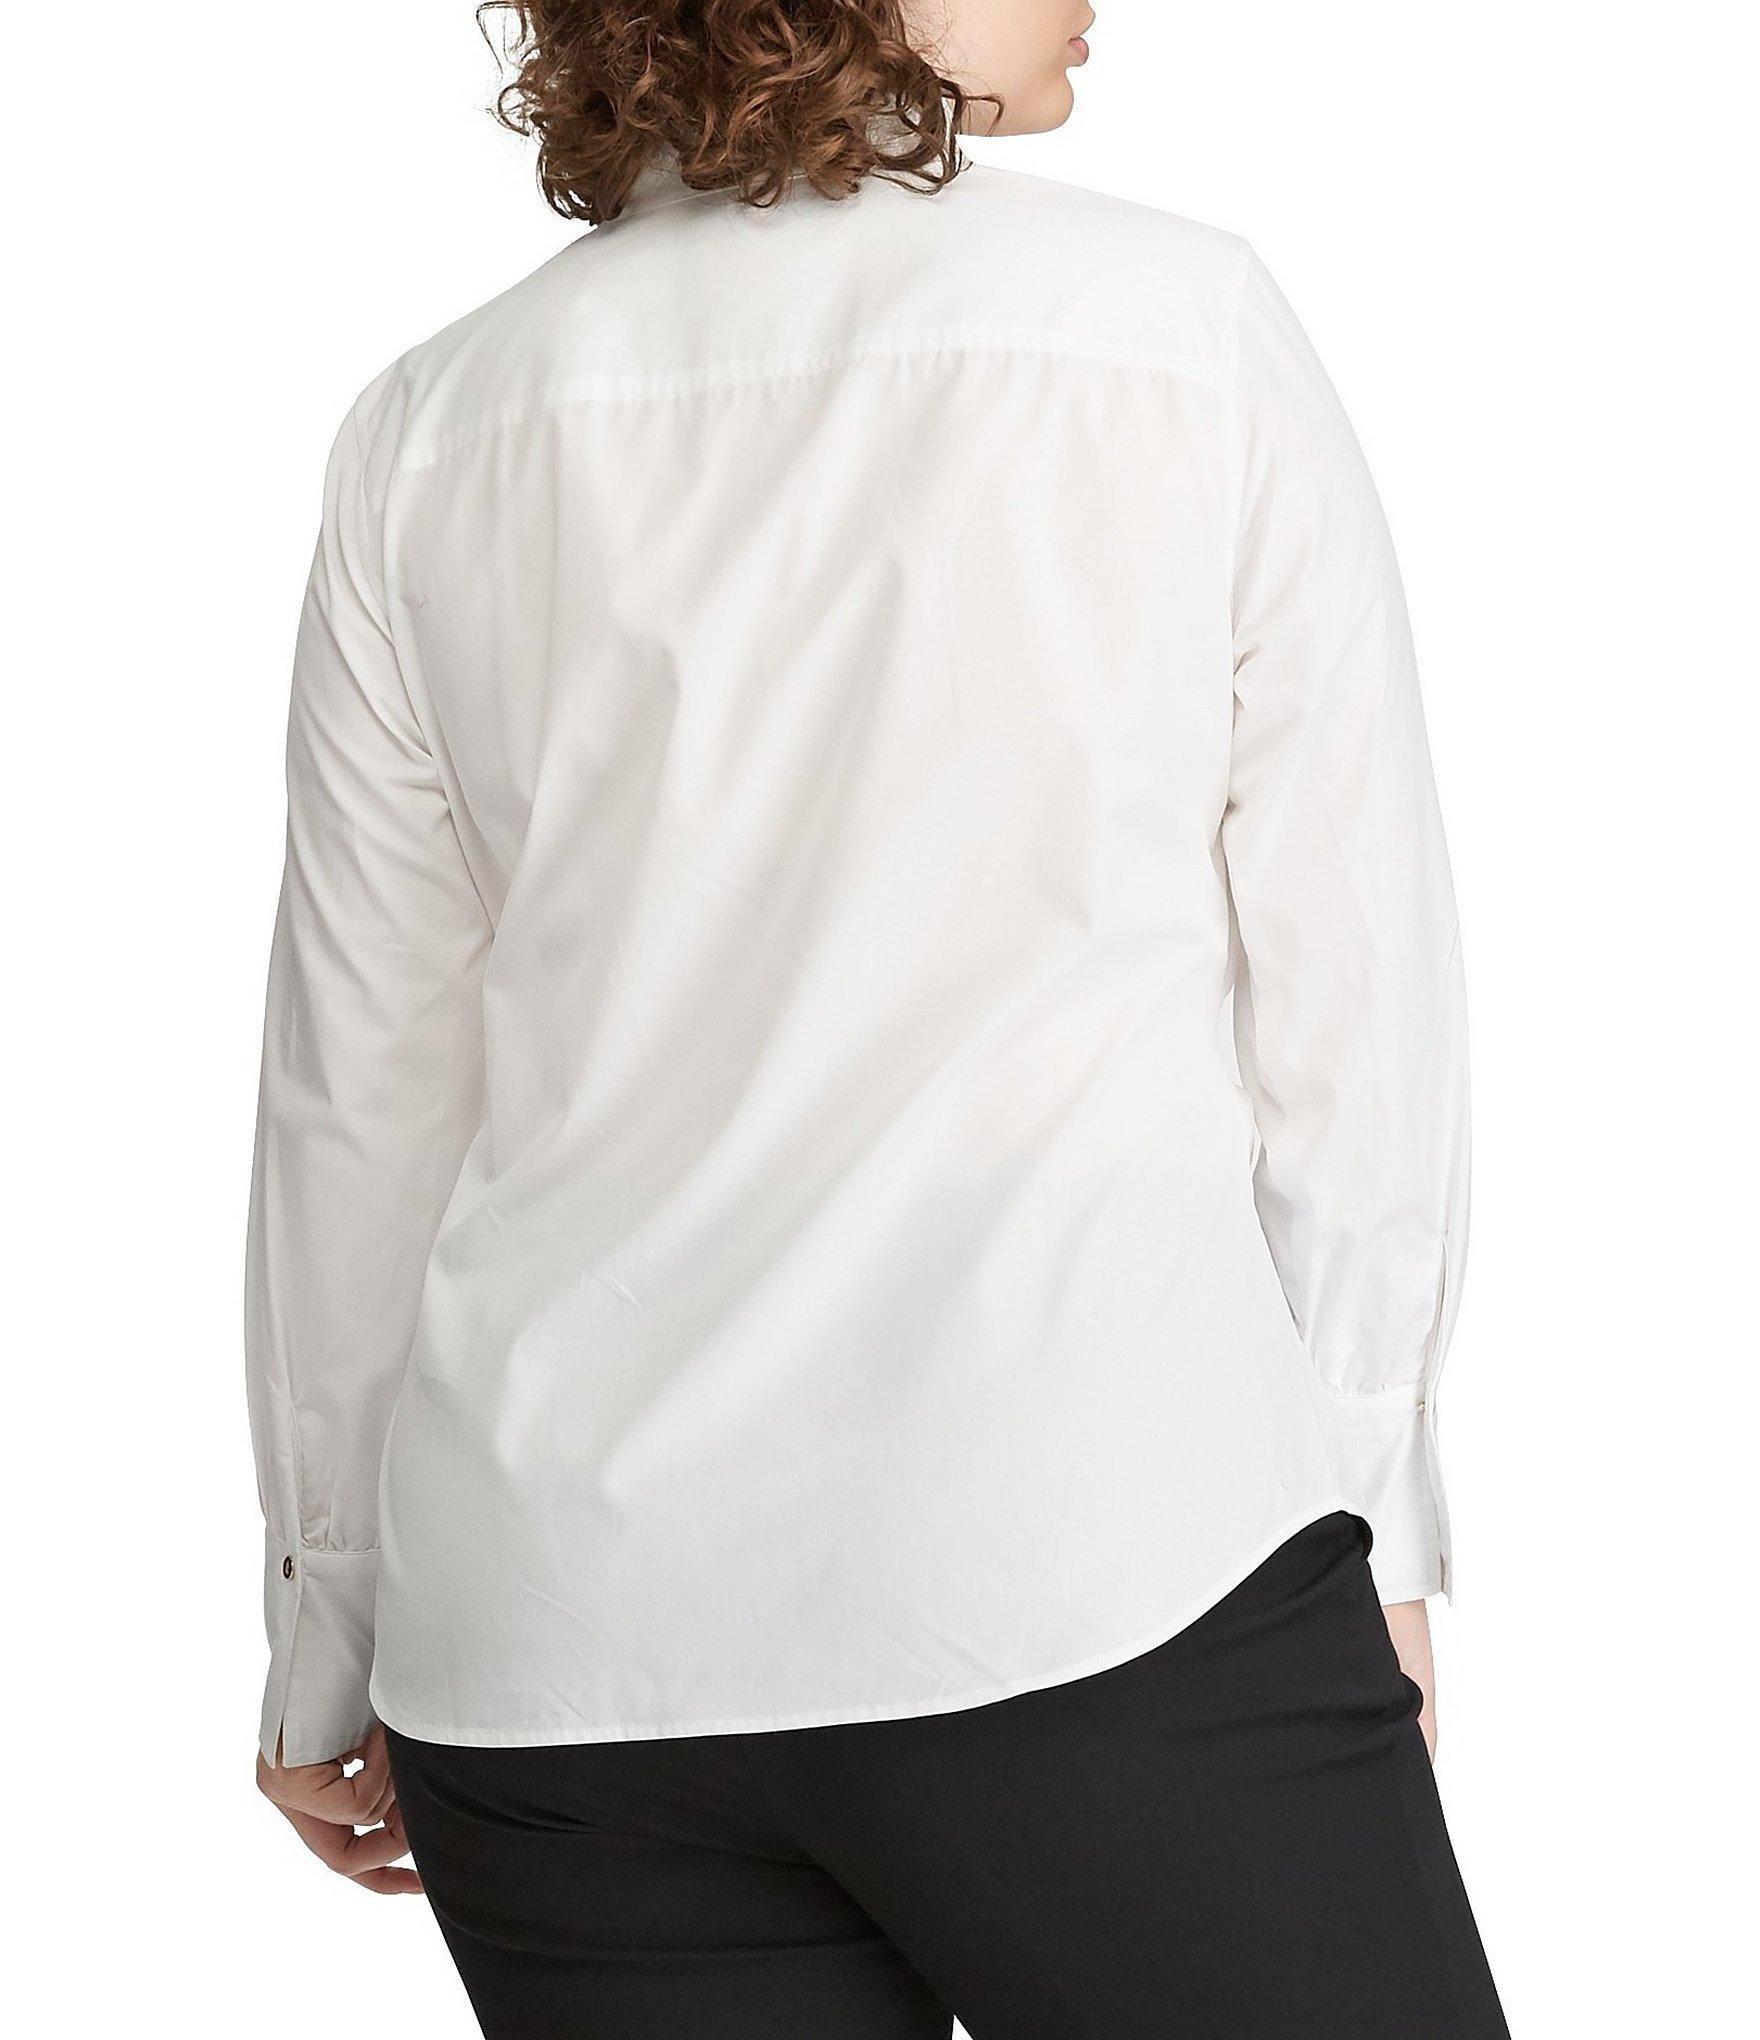 ad9ae443b4a Lauren by Ralph Lauren - White Plus Size Tie-front Button Front Collared  Cotton Shirt. View fullscreen